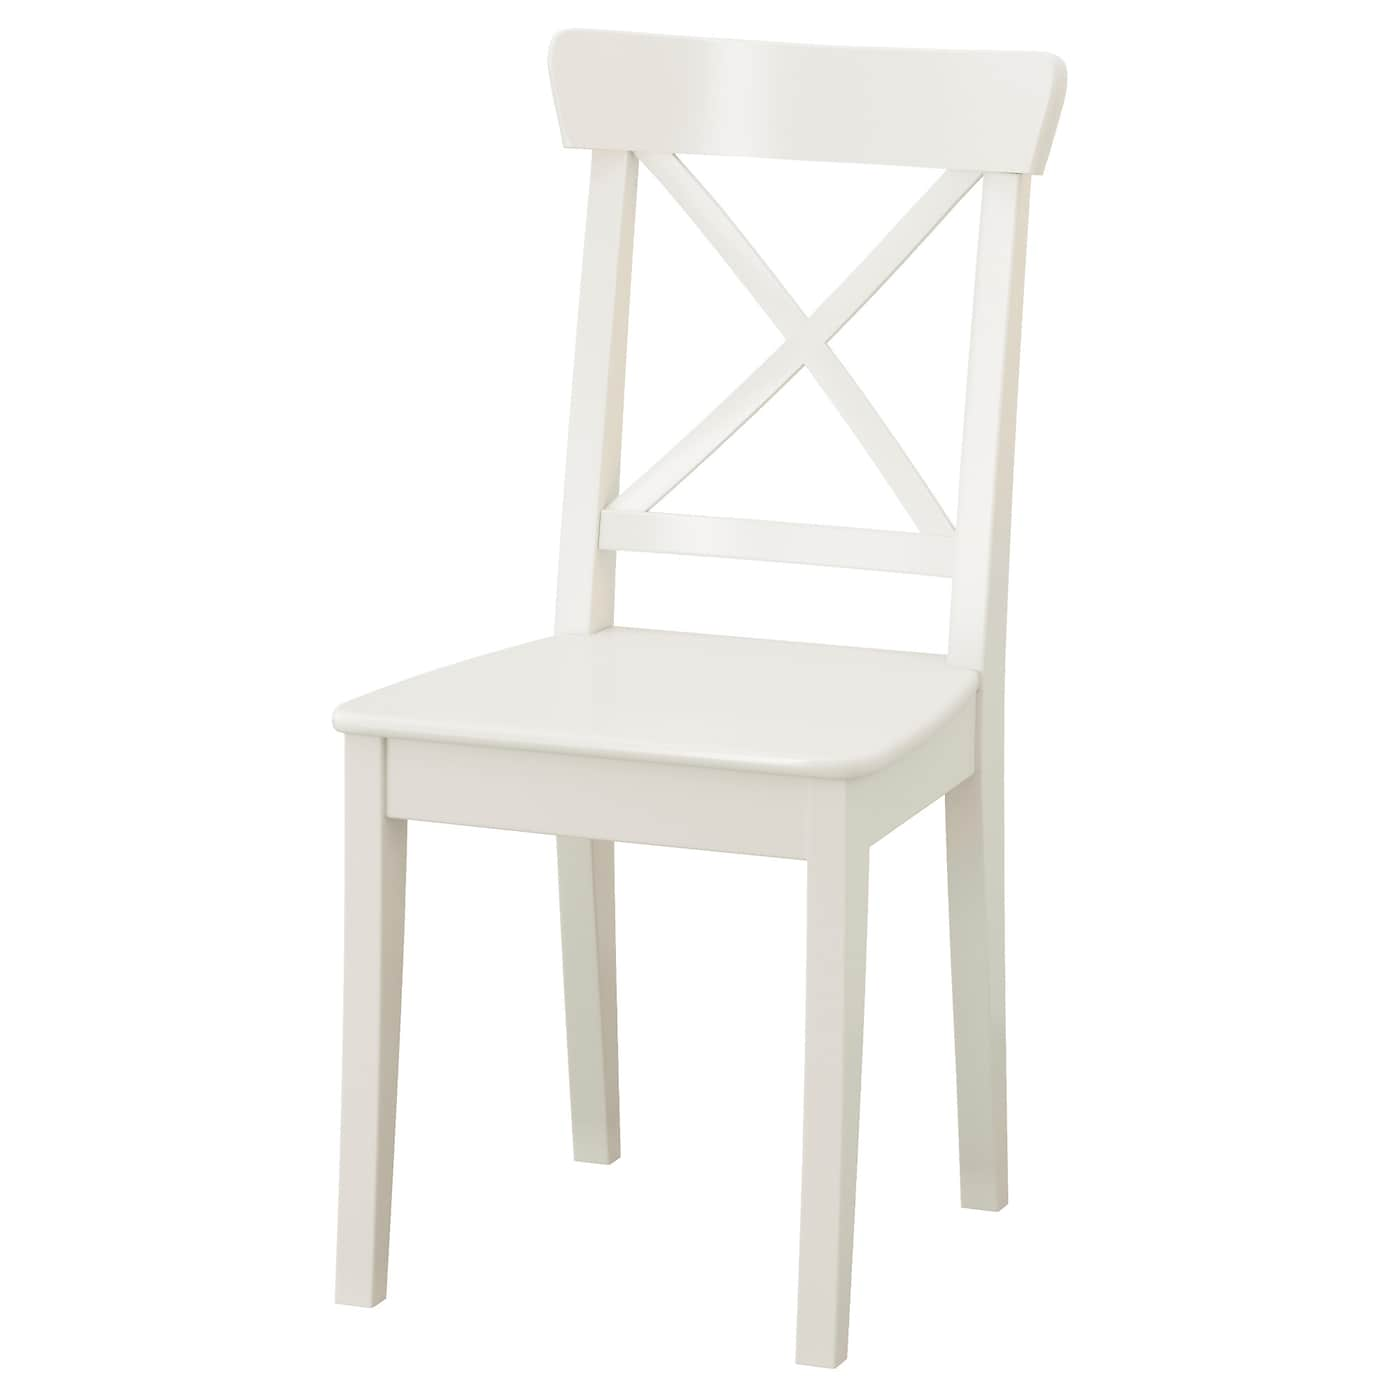 Dining chairs kitchen chairs ikea for White kitchen dining chairs